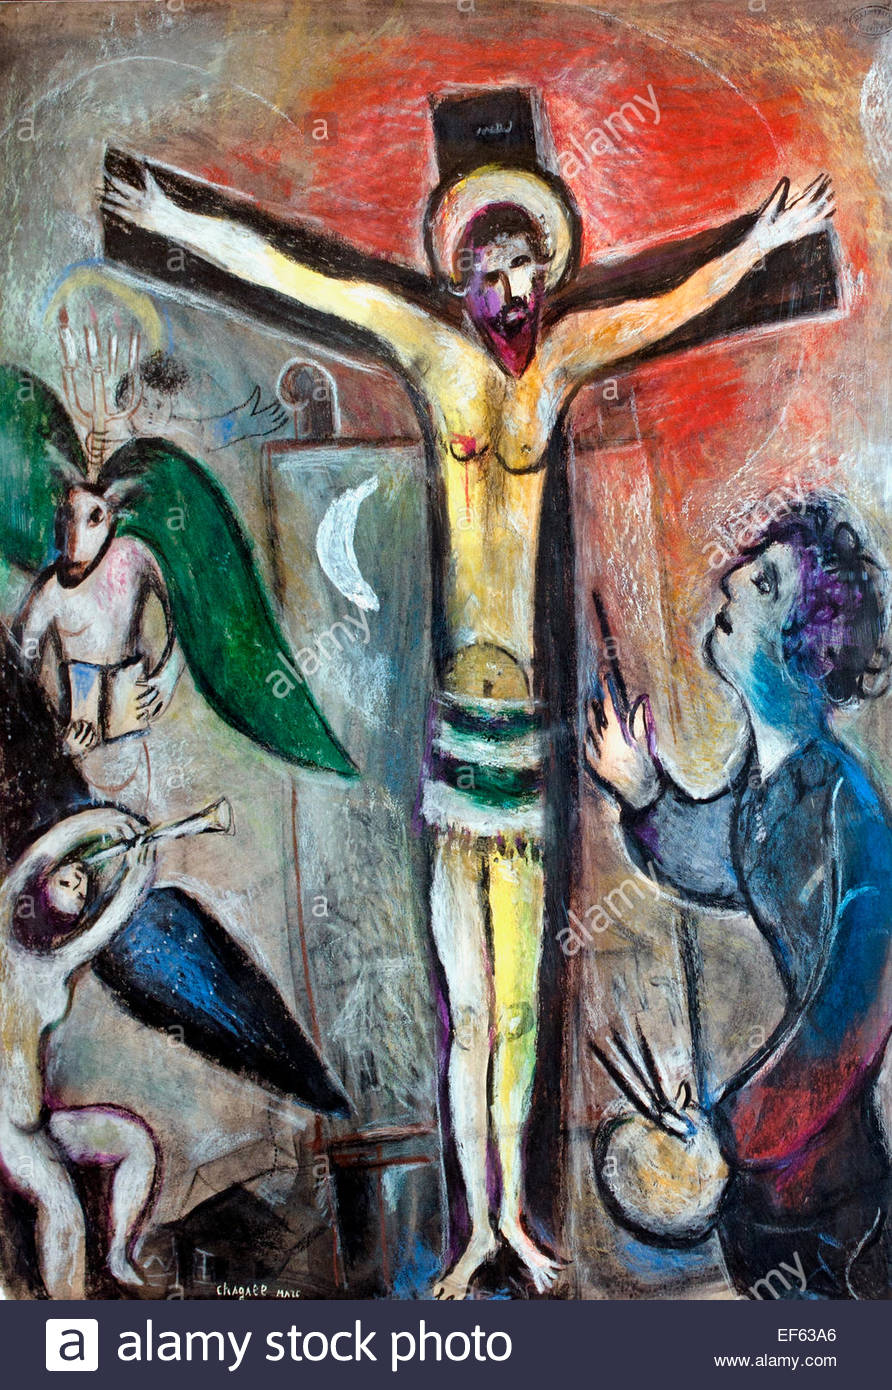 Le christ en le peintre christ and the painter 1951 for Chagall peintre